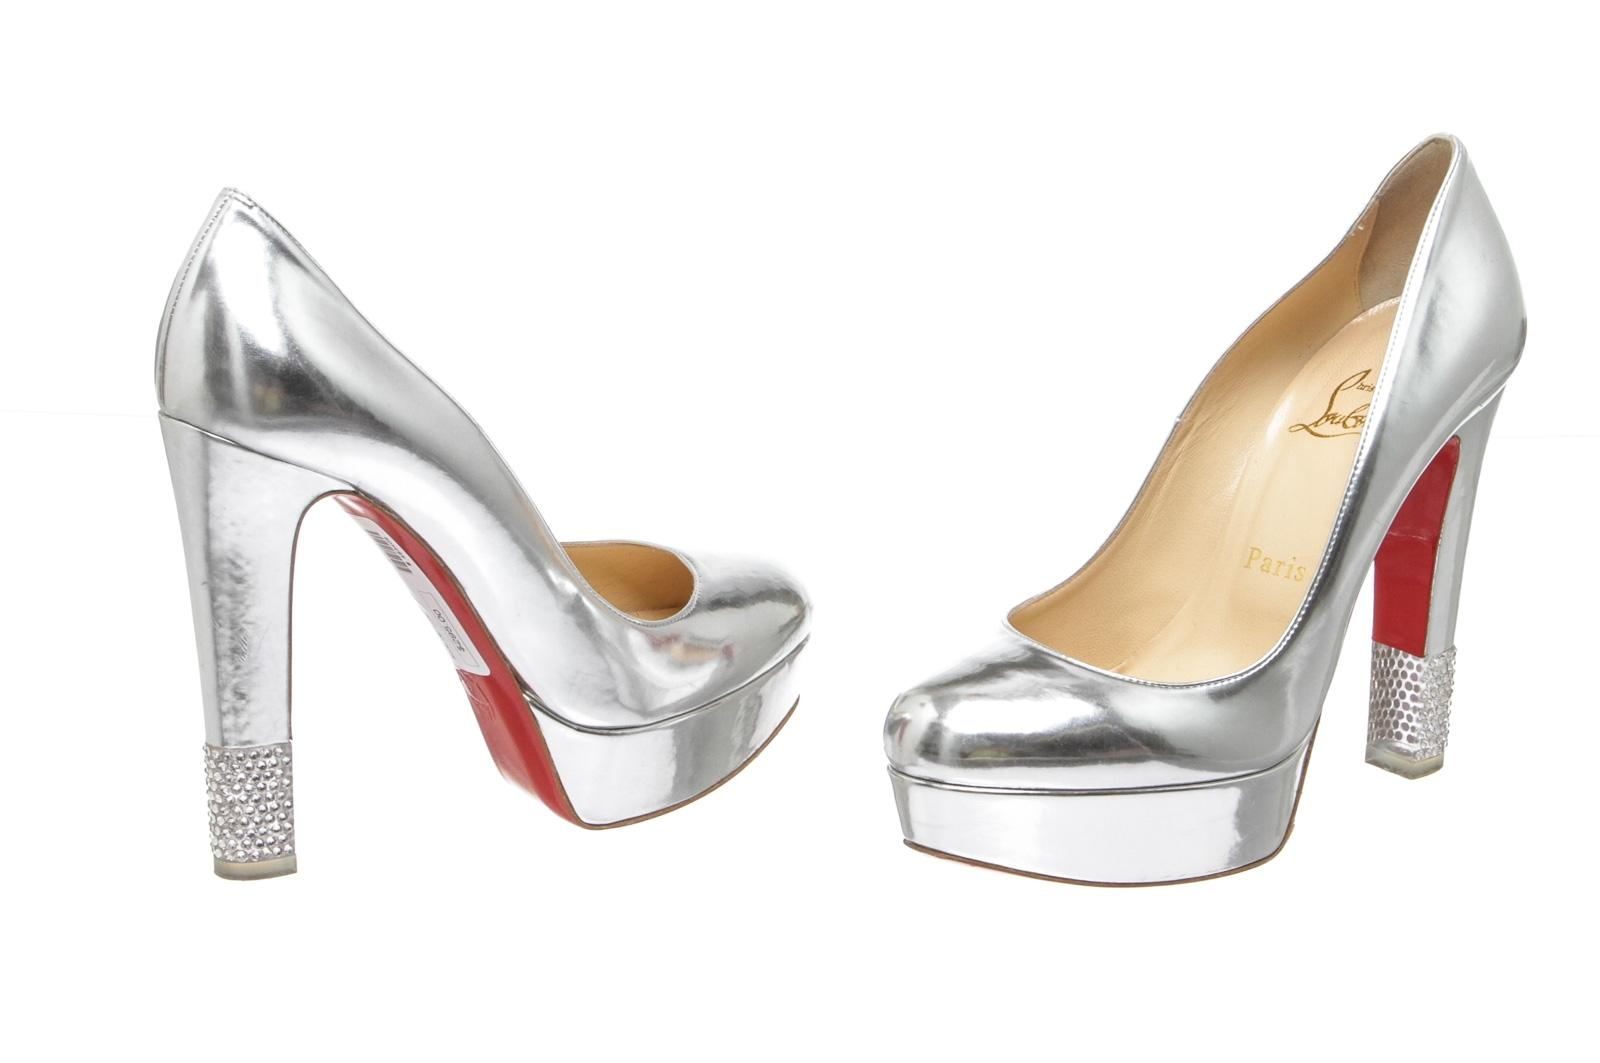 Christian Louboutin Silver 140 483408 Pumps US Size EU 36.5 (Approx. US Pumps 6.5) Regular (M, B) 36f31d